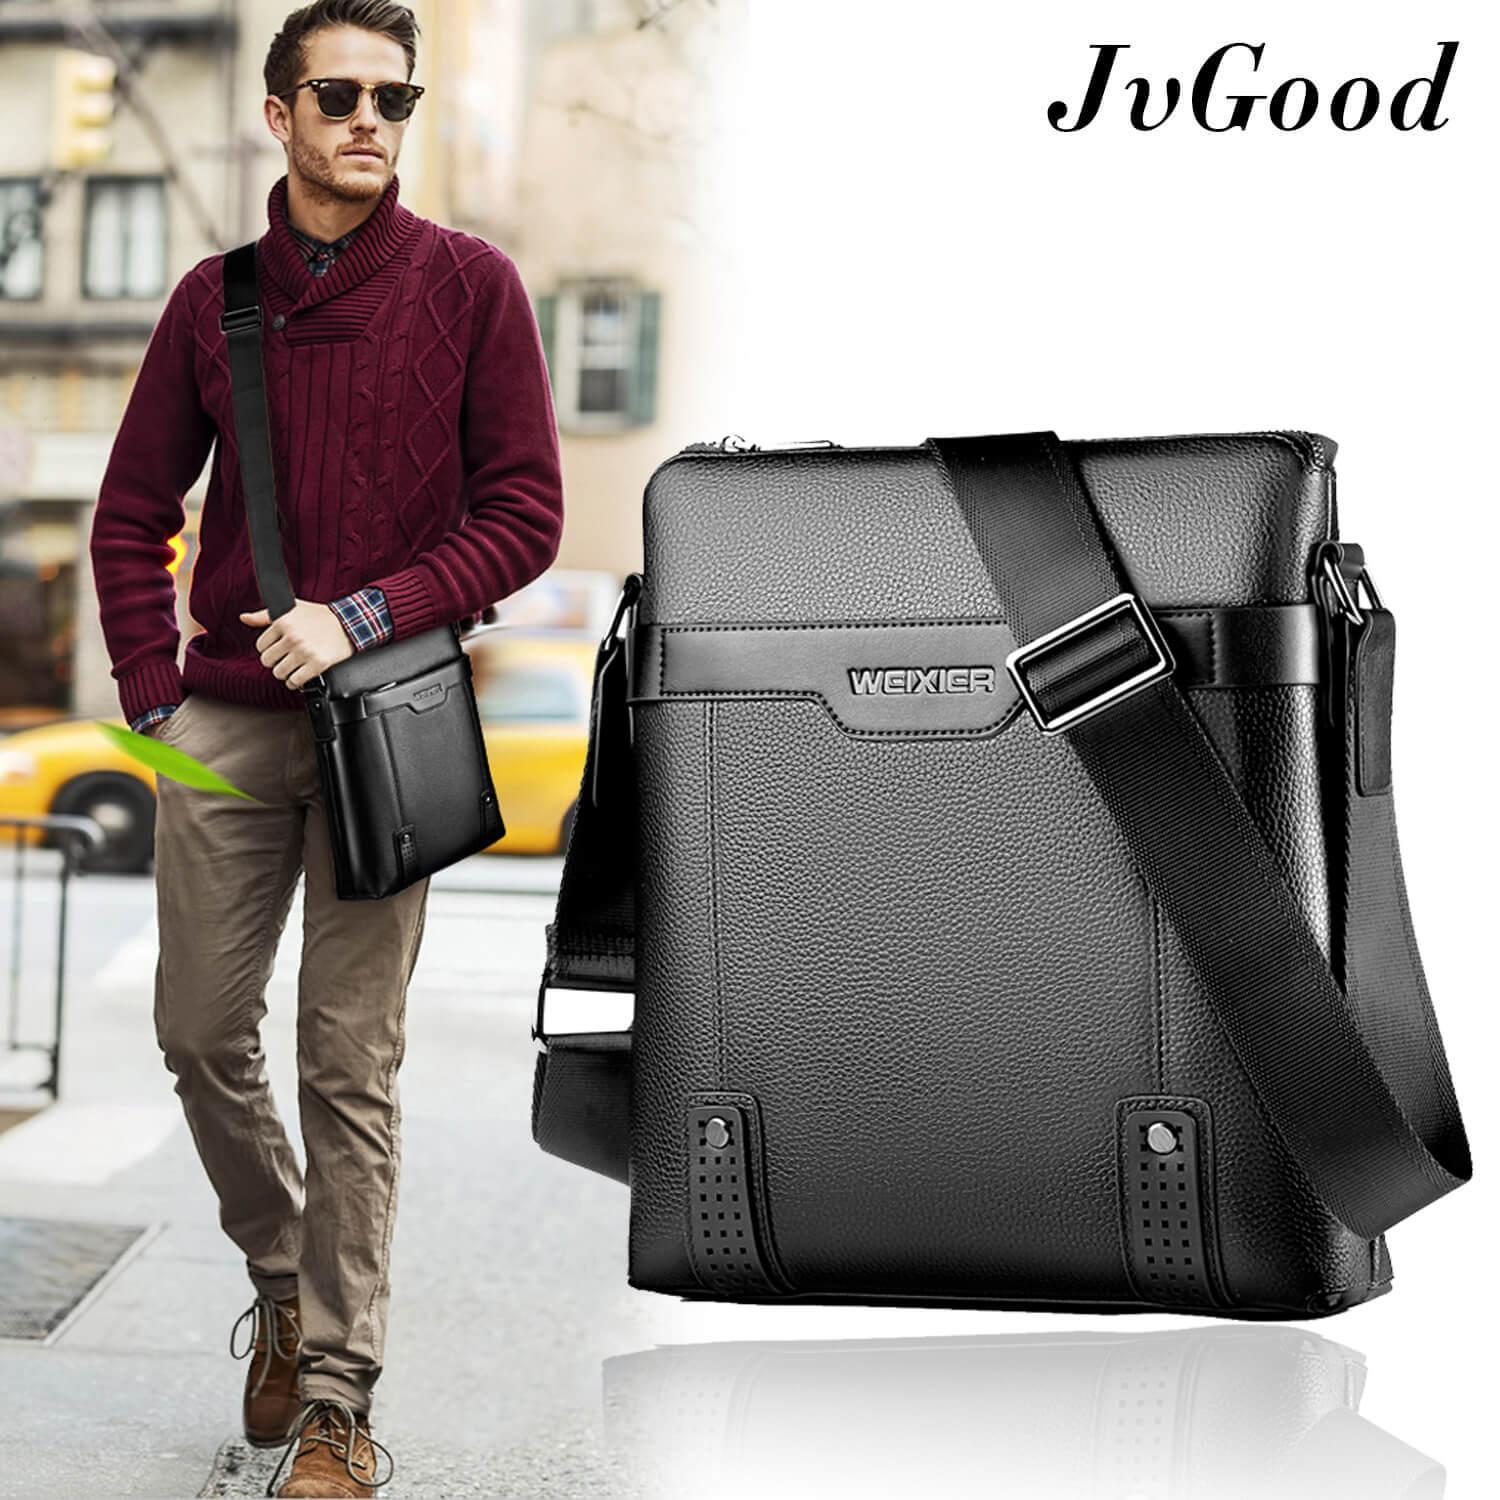 e2b2dda7a48 Messenger Bags for sale - Messenger Bags for Men online brands, prices    reviews in Philippines   Lazada.com.ph